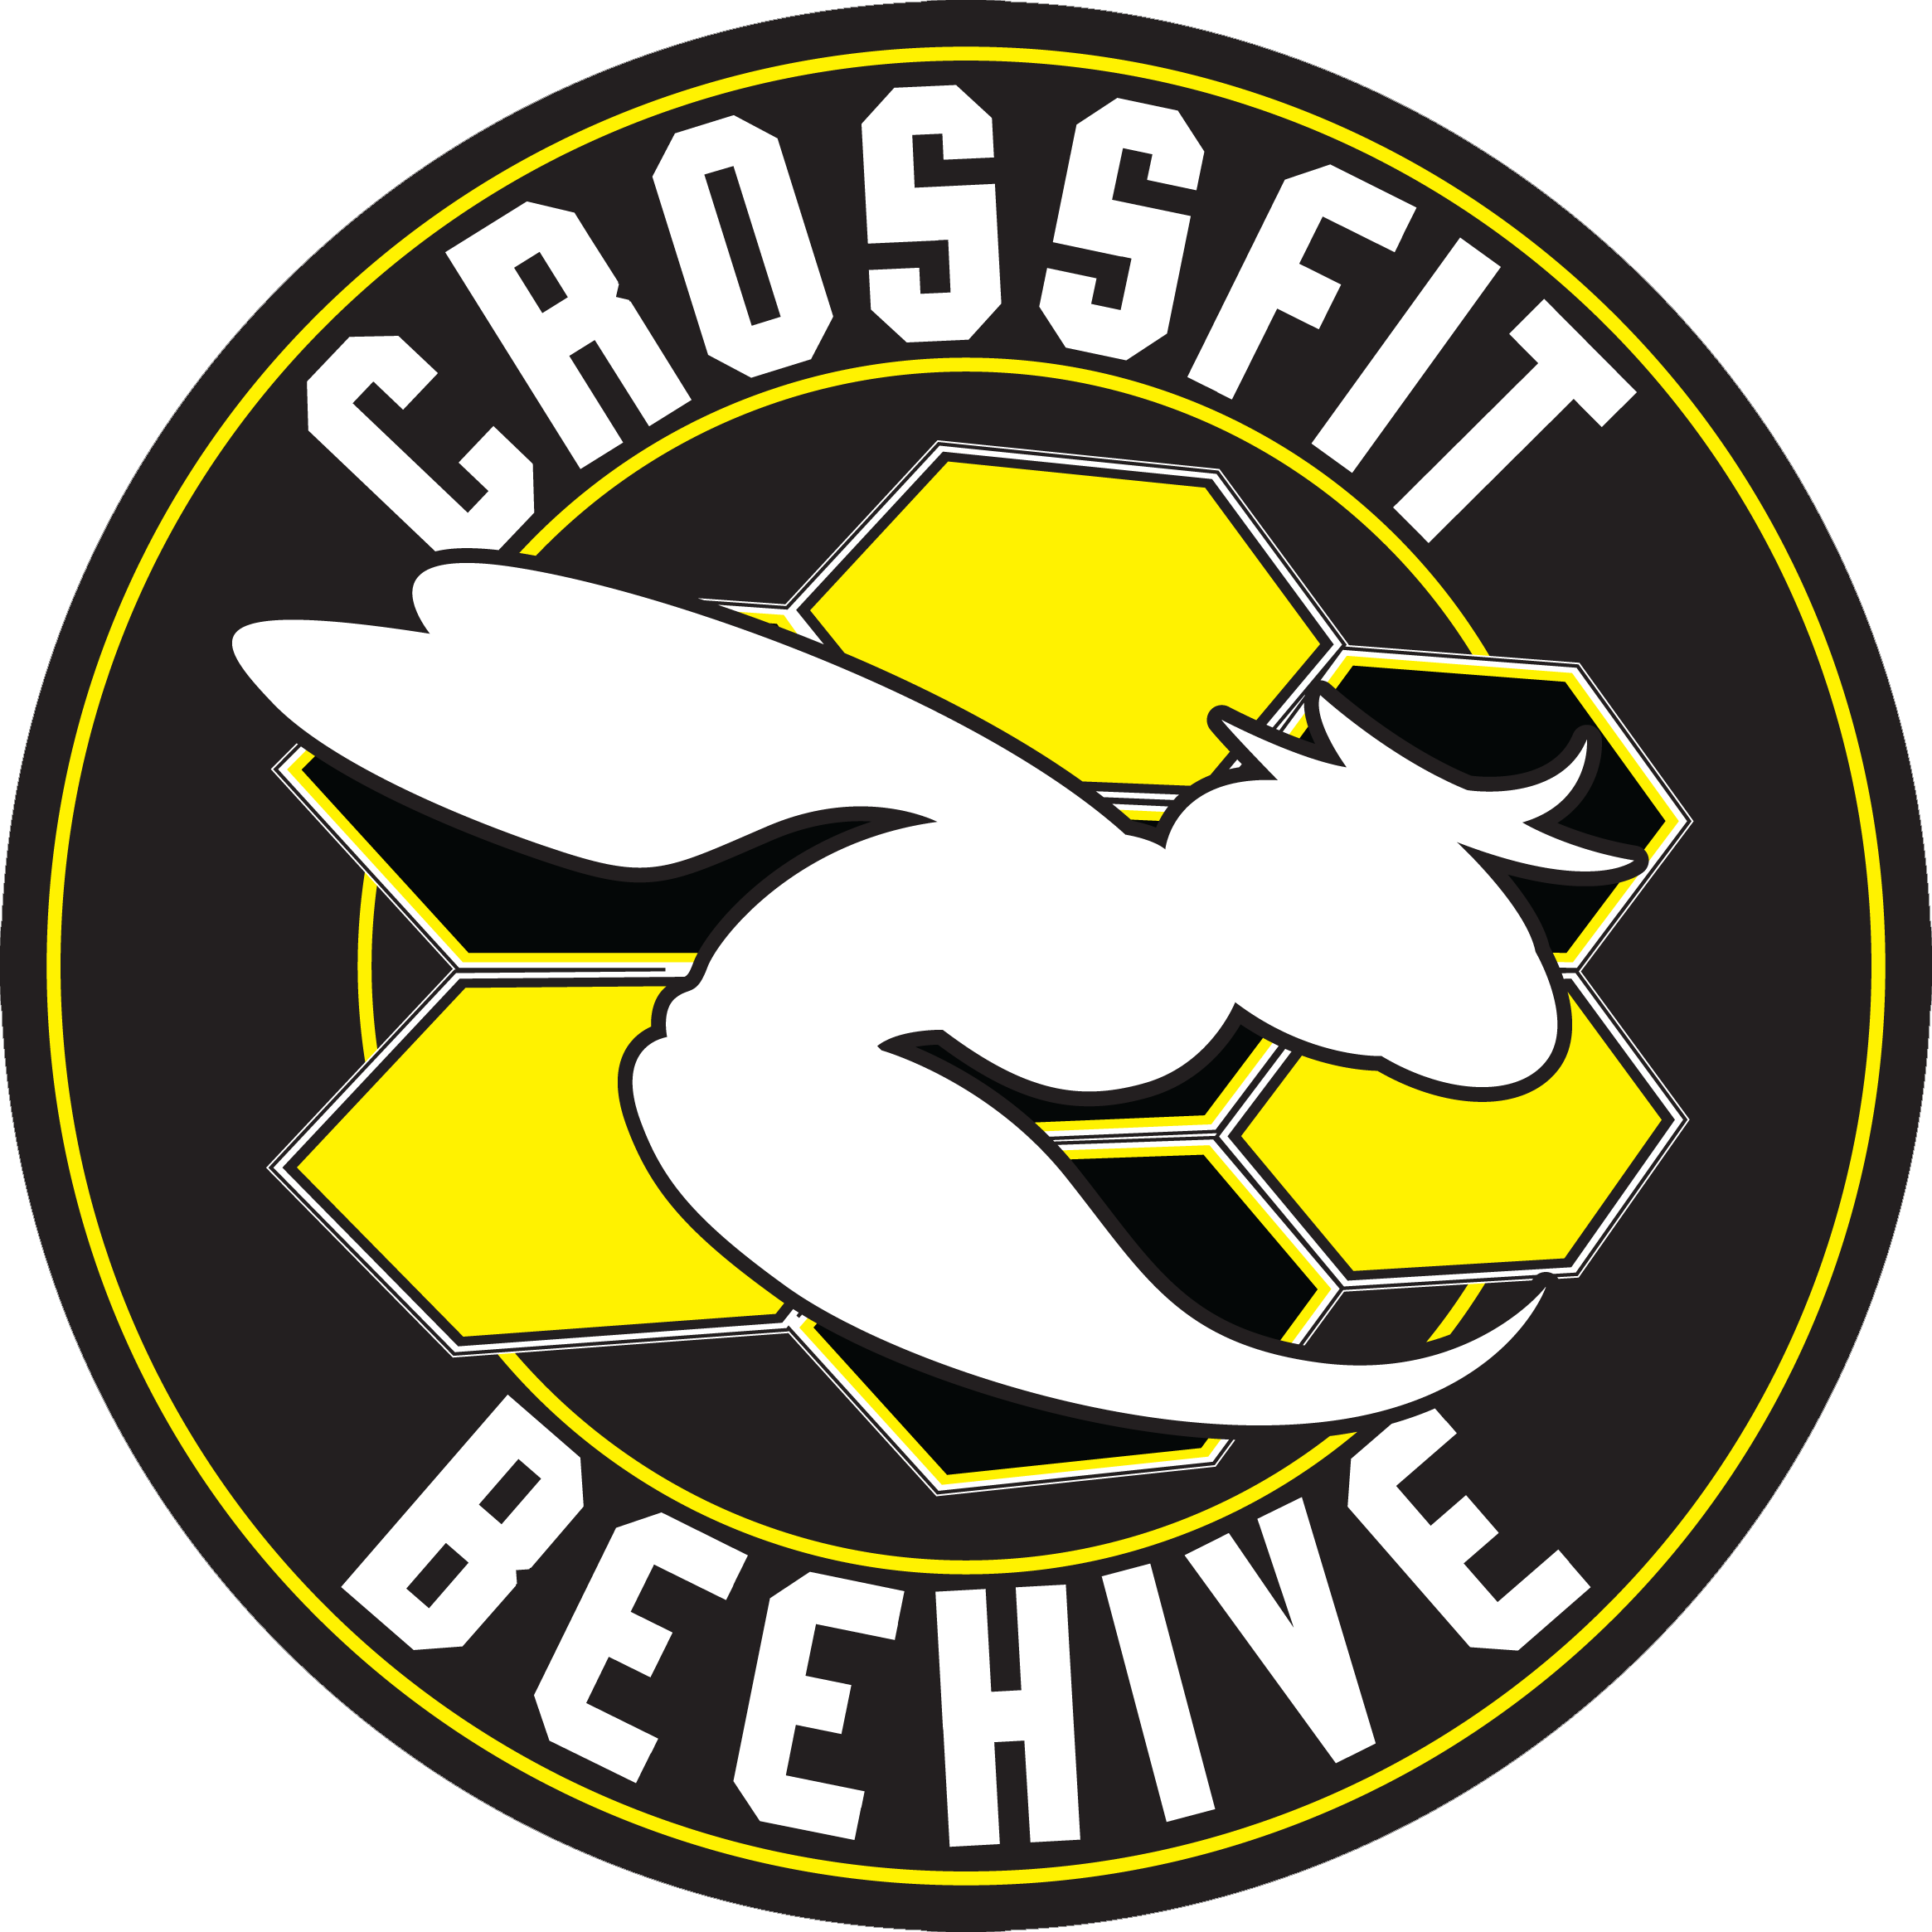 Crossfit-Circle-Sticker.png